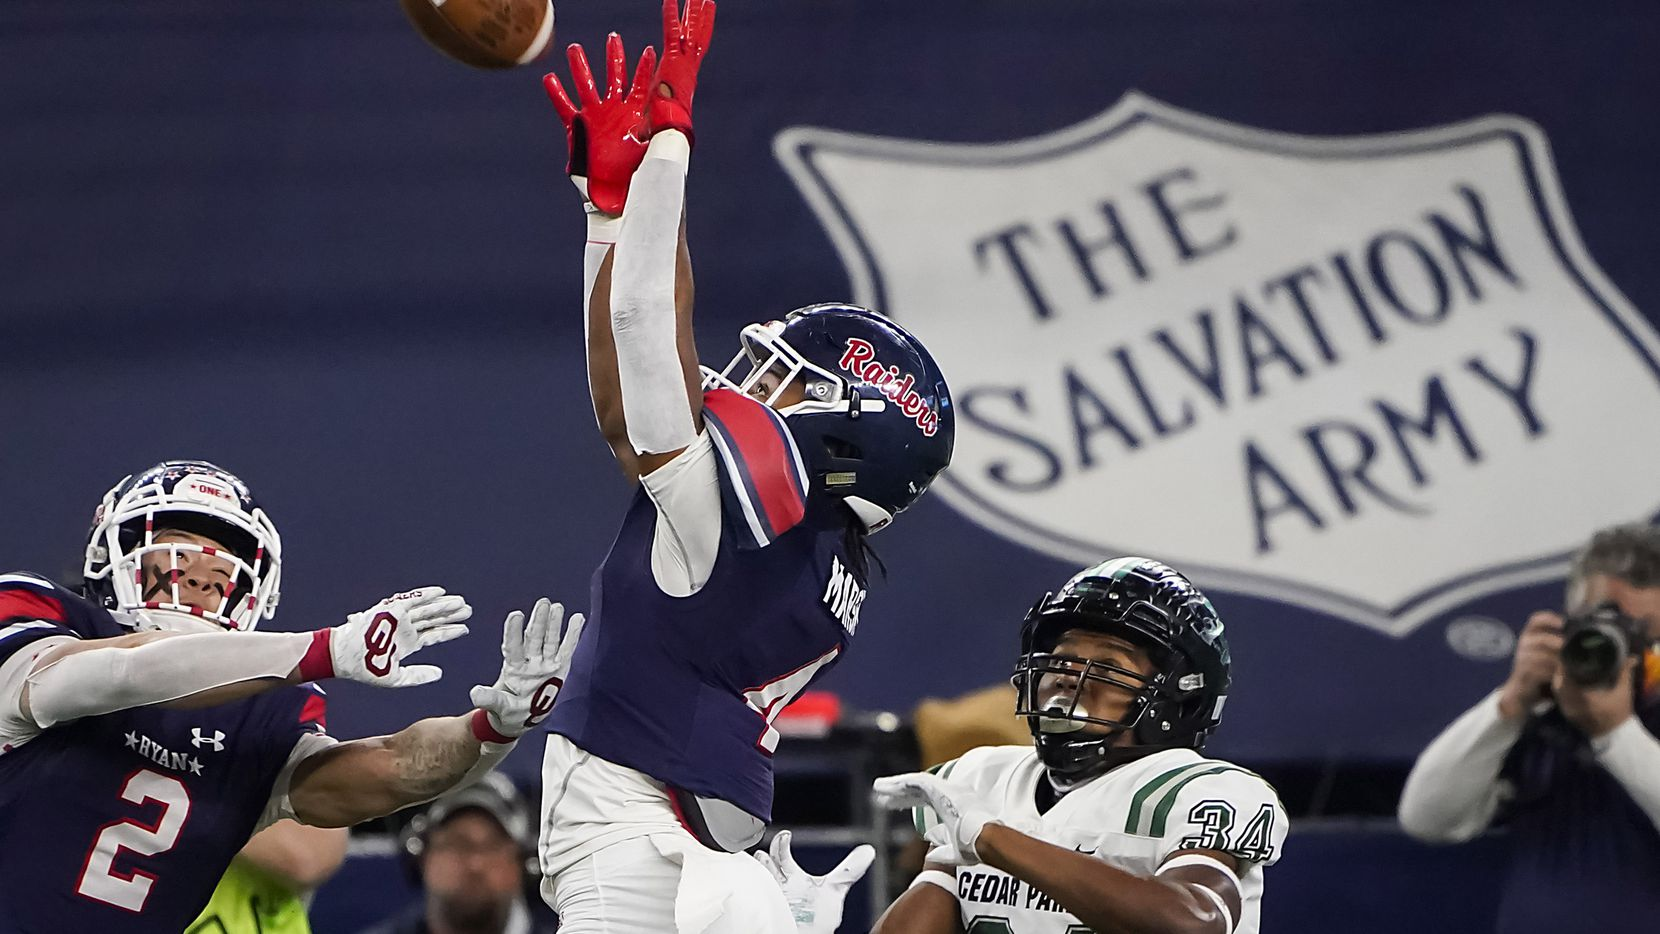 Denton Ryan defensive back Ty Marsh (4) intercepts a pass intended for Cedar Park wide receiver Josh Cameron (34) during the first half of the Class 5A Division I state football championship game at AT&T Stadium on Friday, Jan. 15, 2021, in Arlington, Texas. (Smiley N. Pool/The Dallas Morning News)